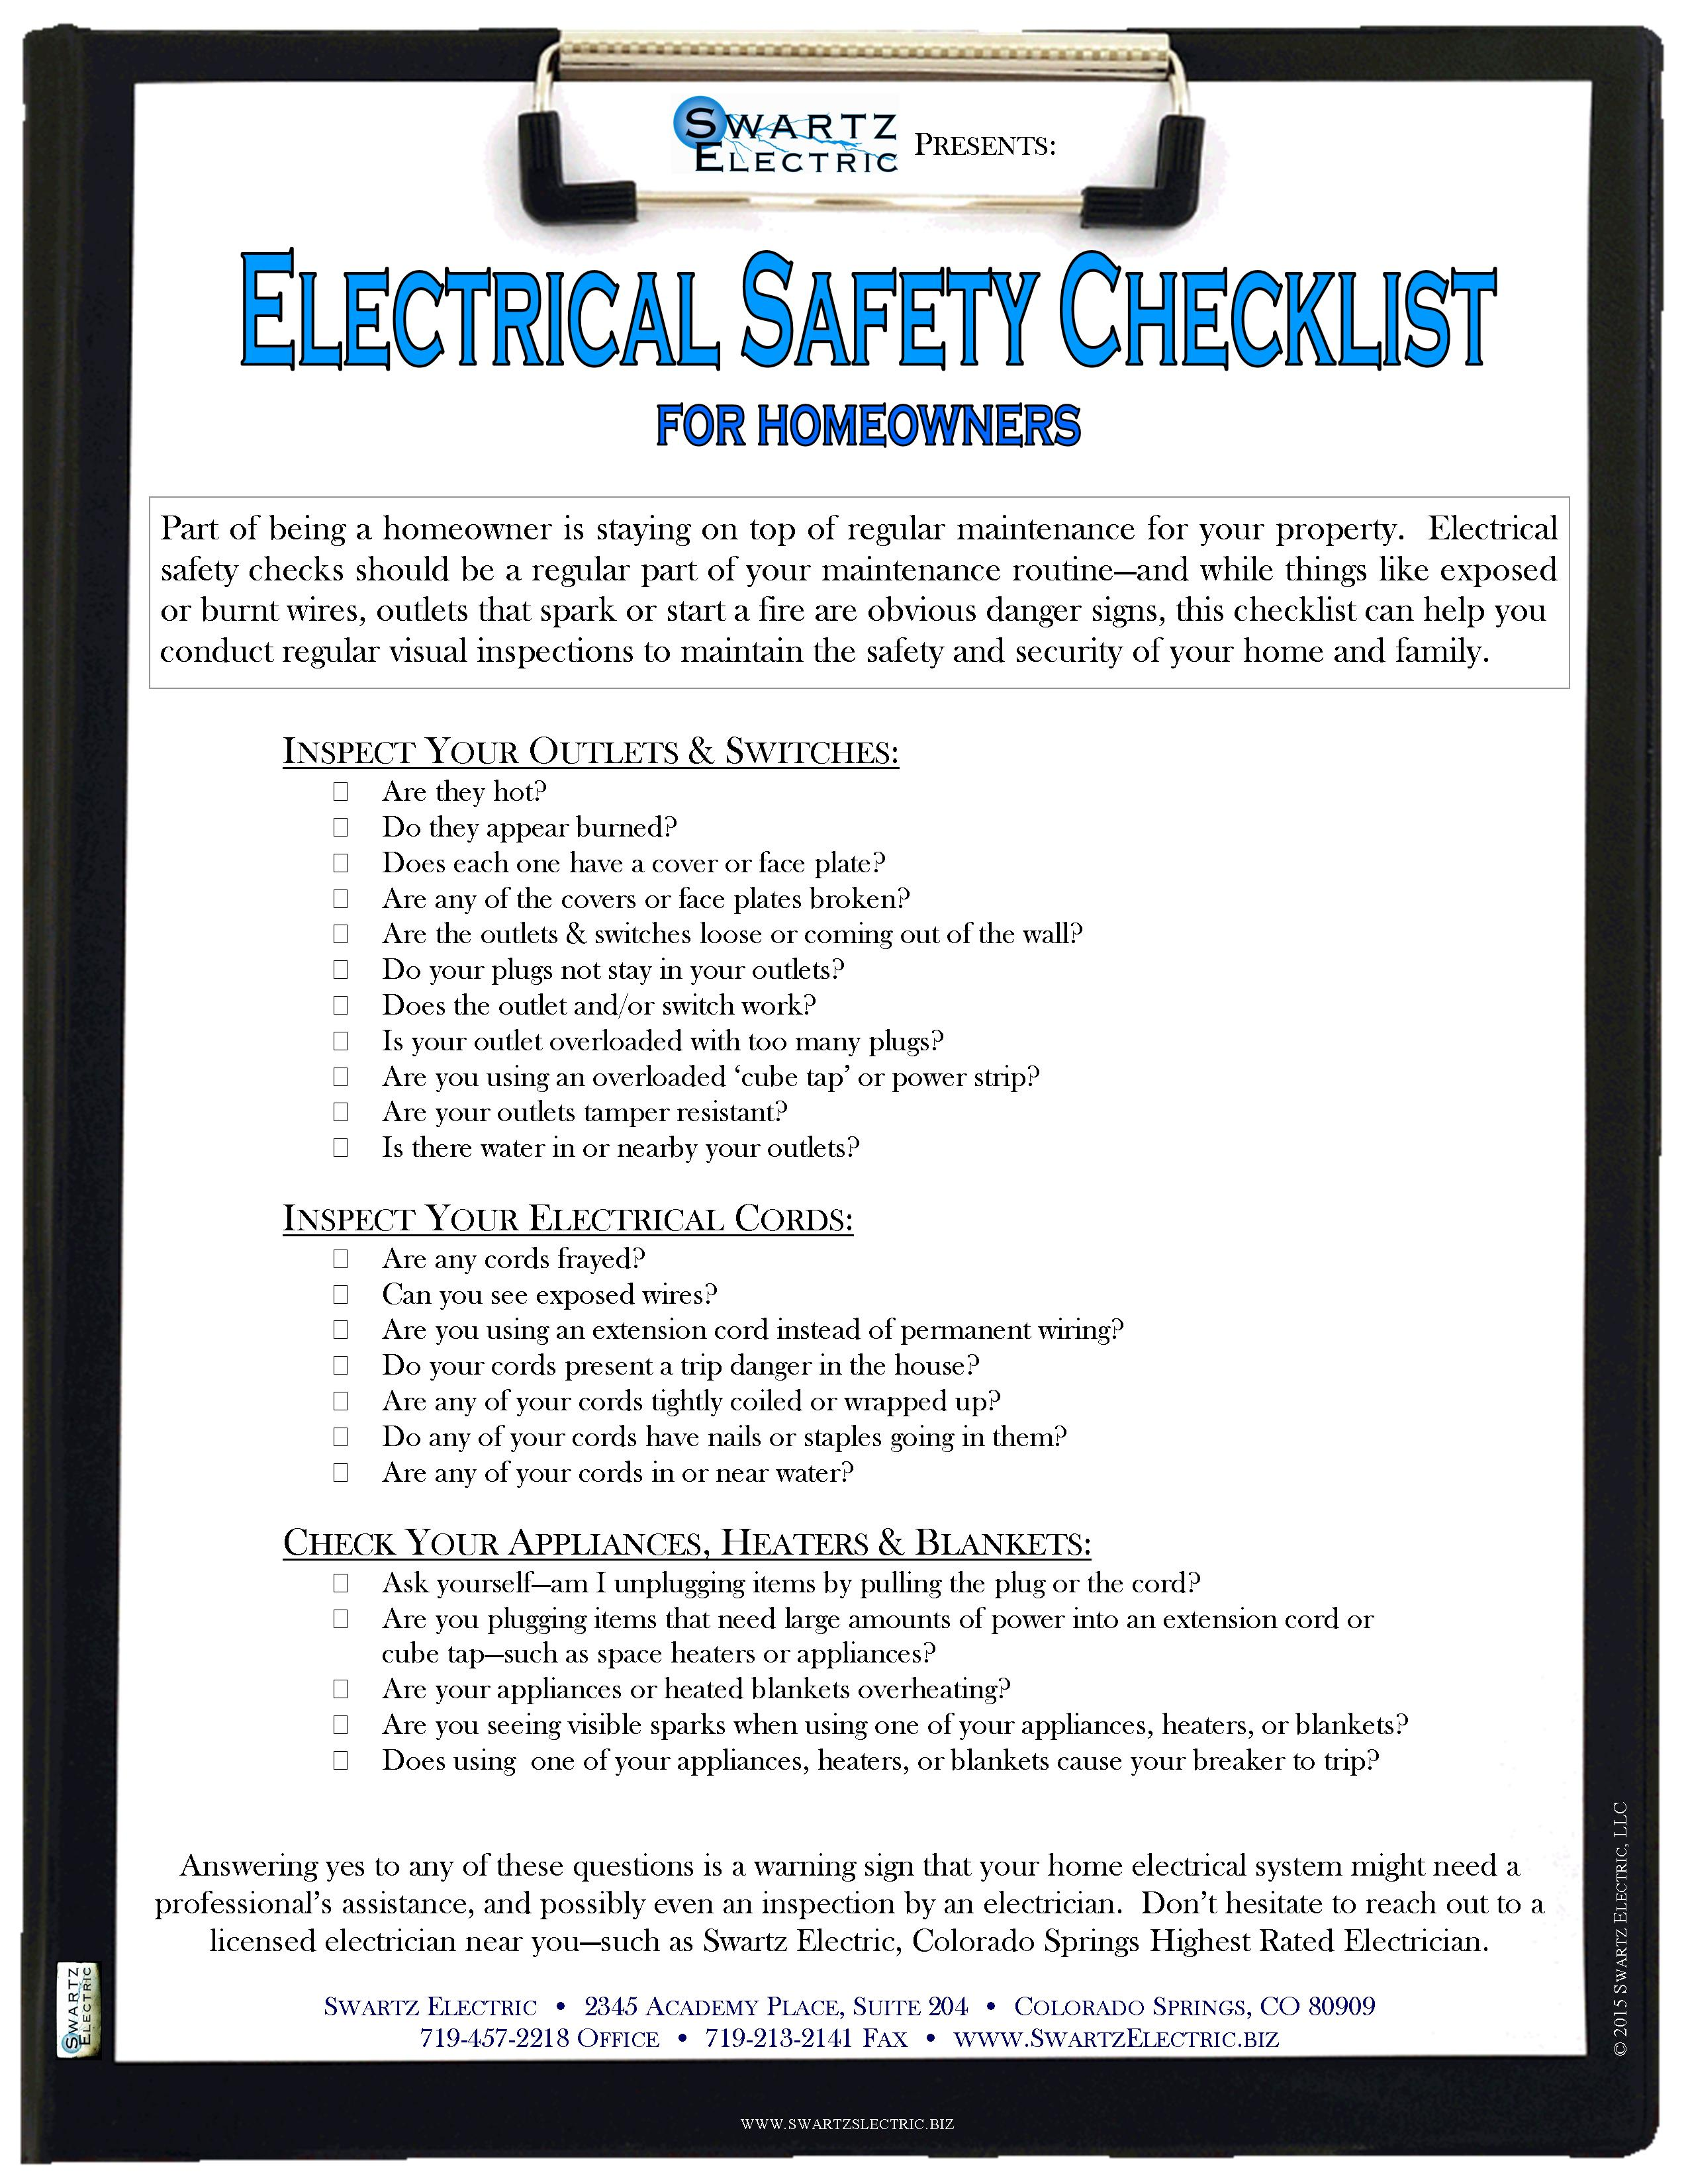 Conductors Of Electricity List : List the conductors of electricity mfawriting web